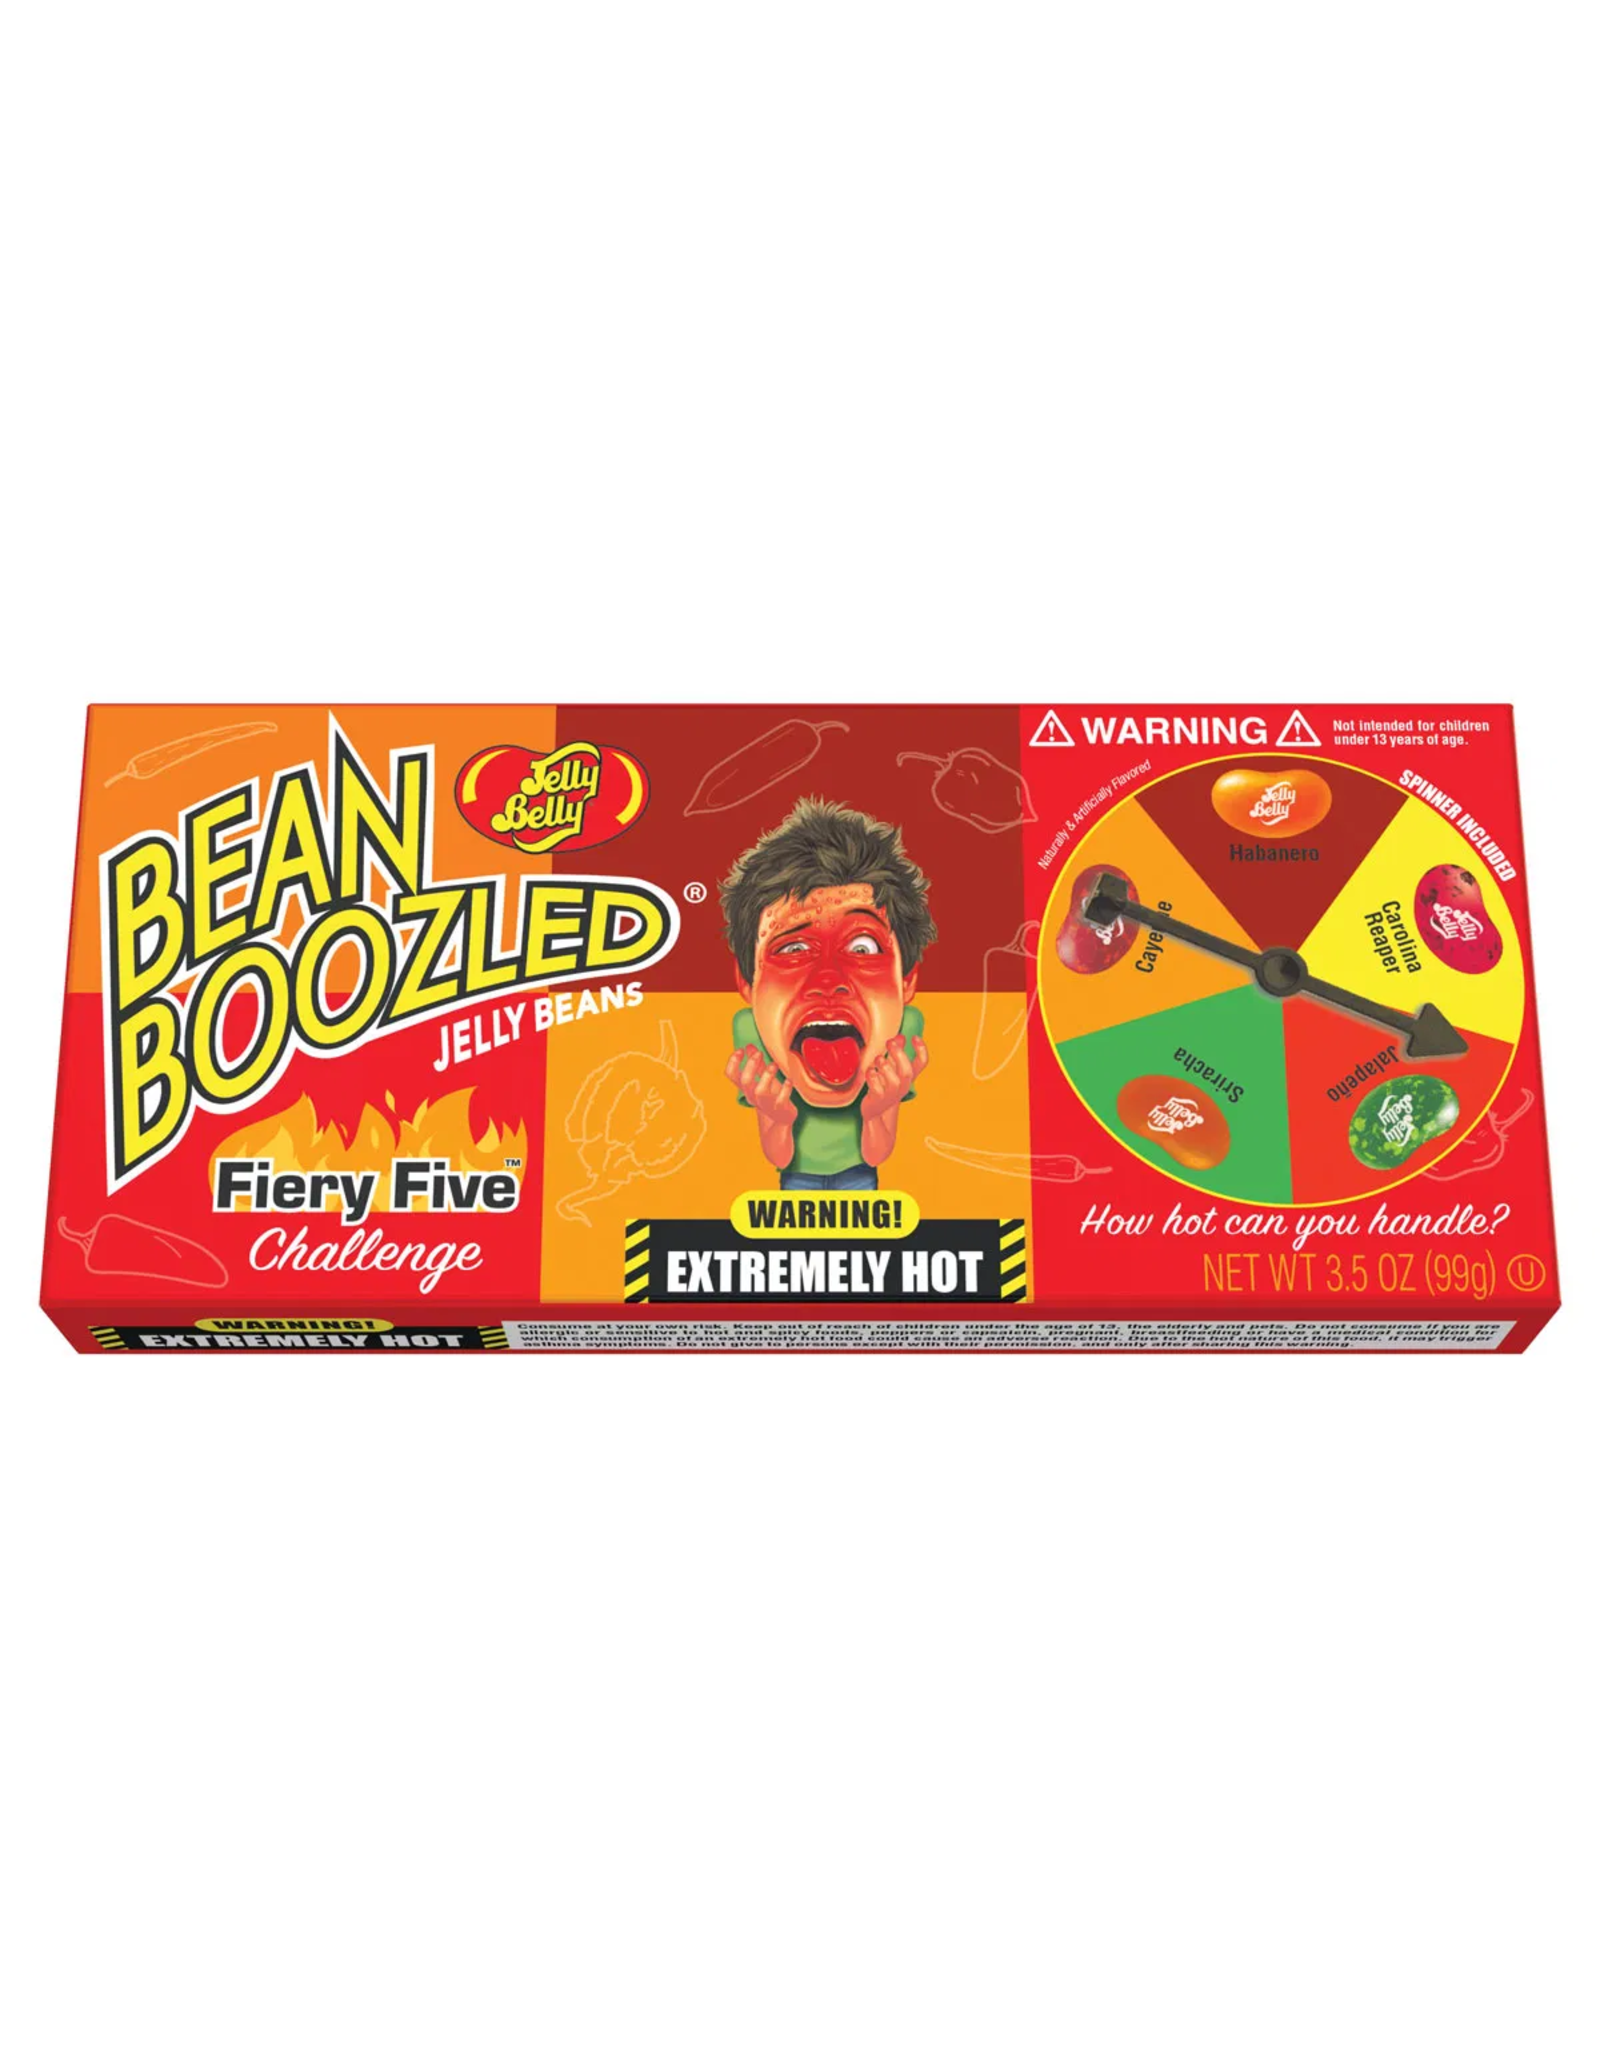 Jelly Belly Bean Boozled Jelly Beans - Flaming Five Challenge - Spinner Included - 100g